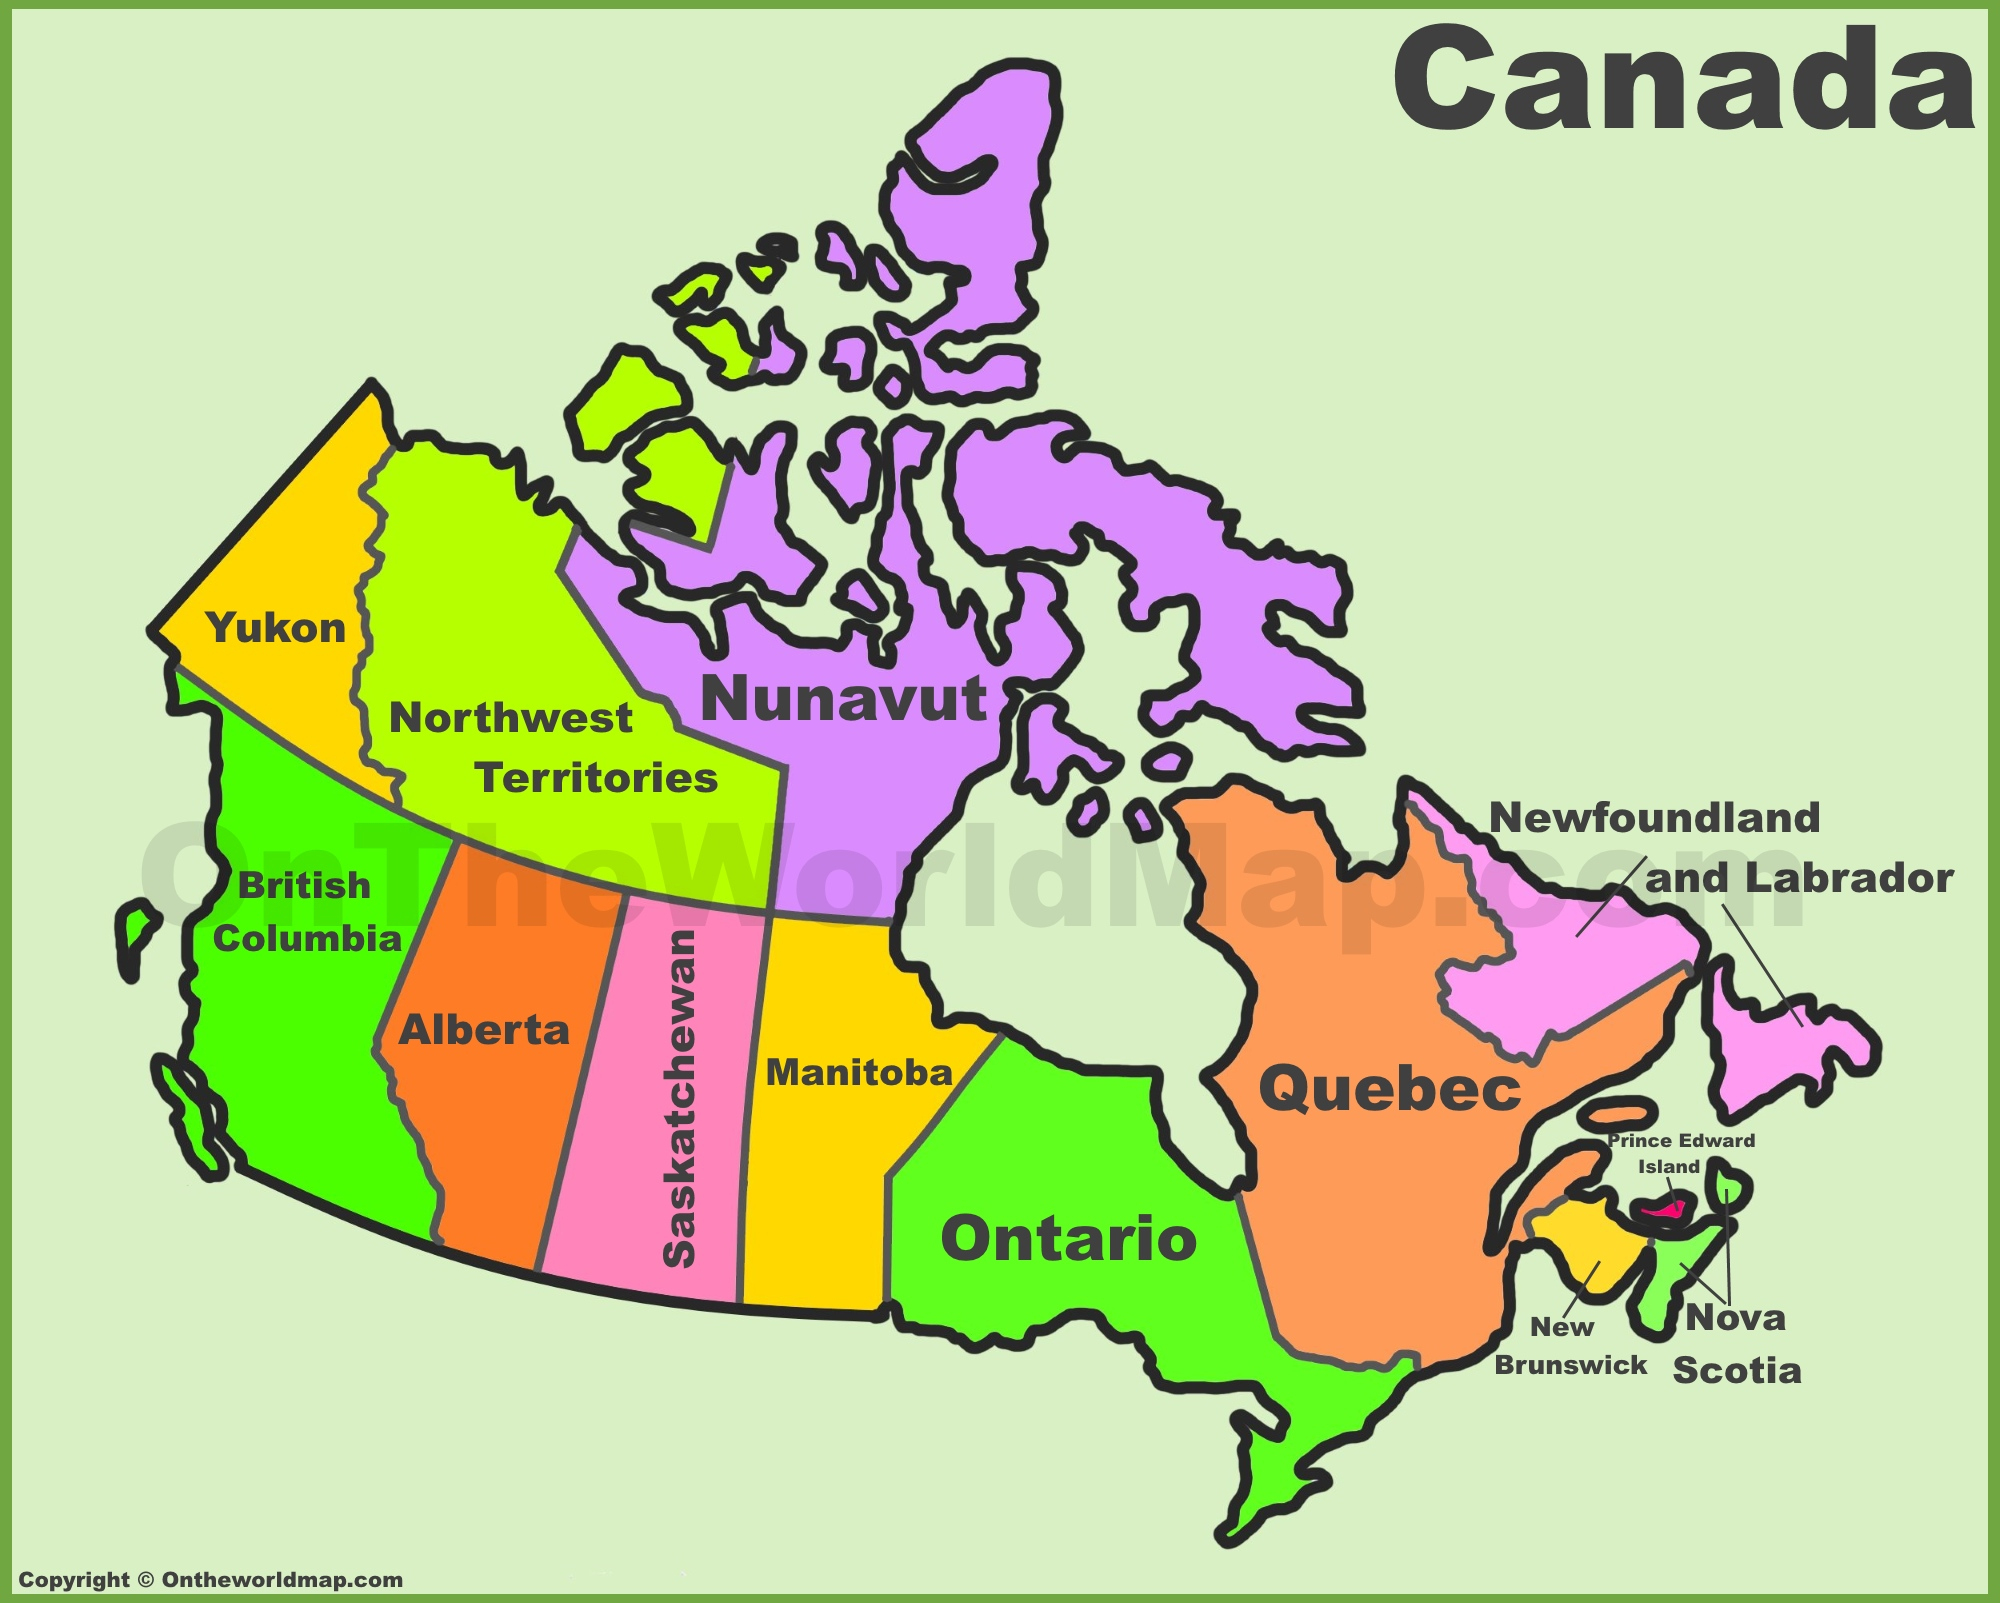 Canada Provinces And Territories Map   List Of Canada Provinces And - Free Printable Map Of Canada Provinces And Territories